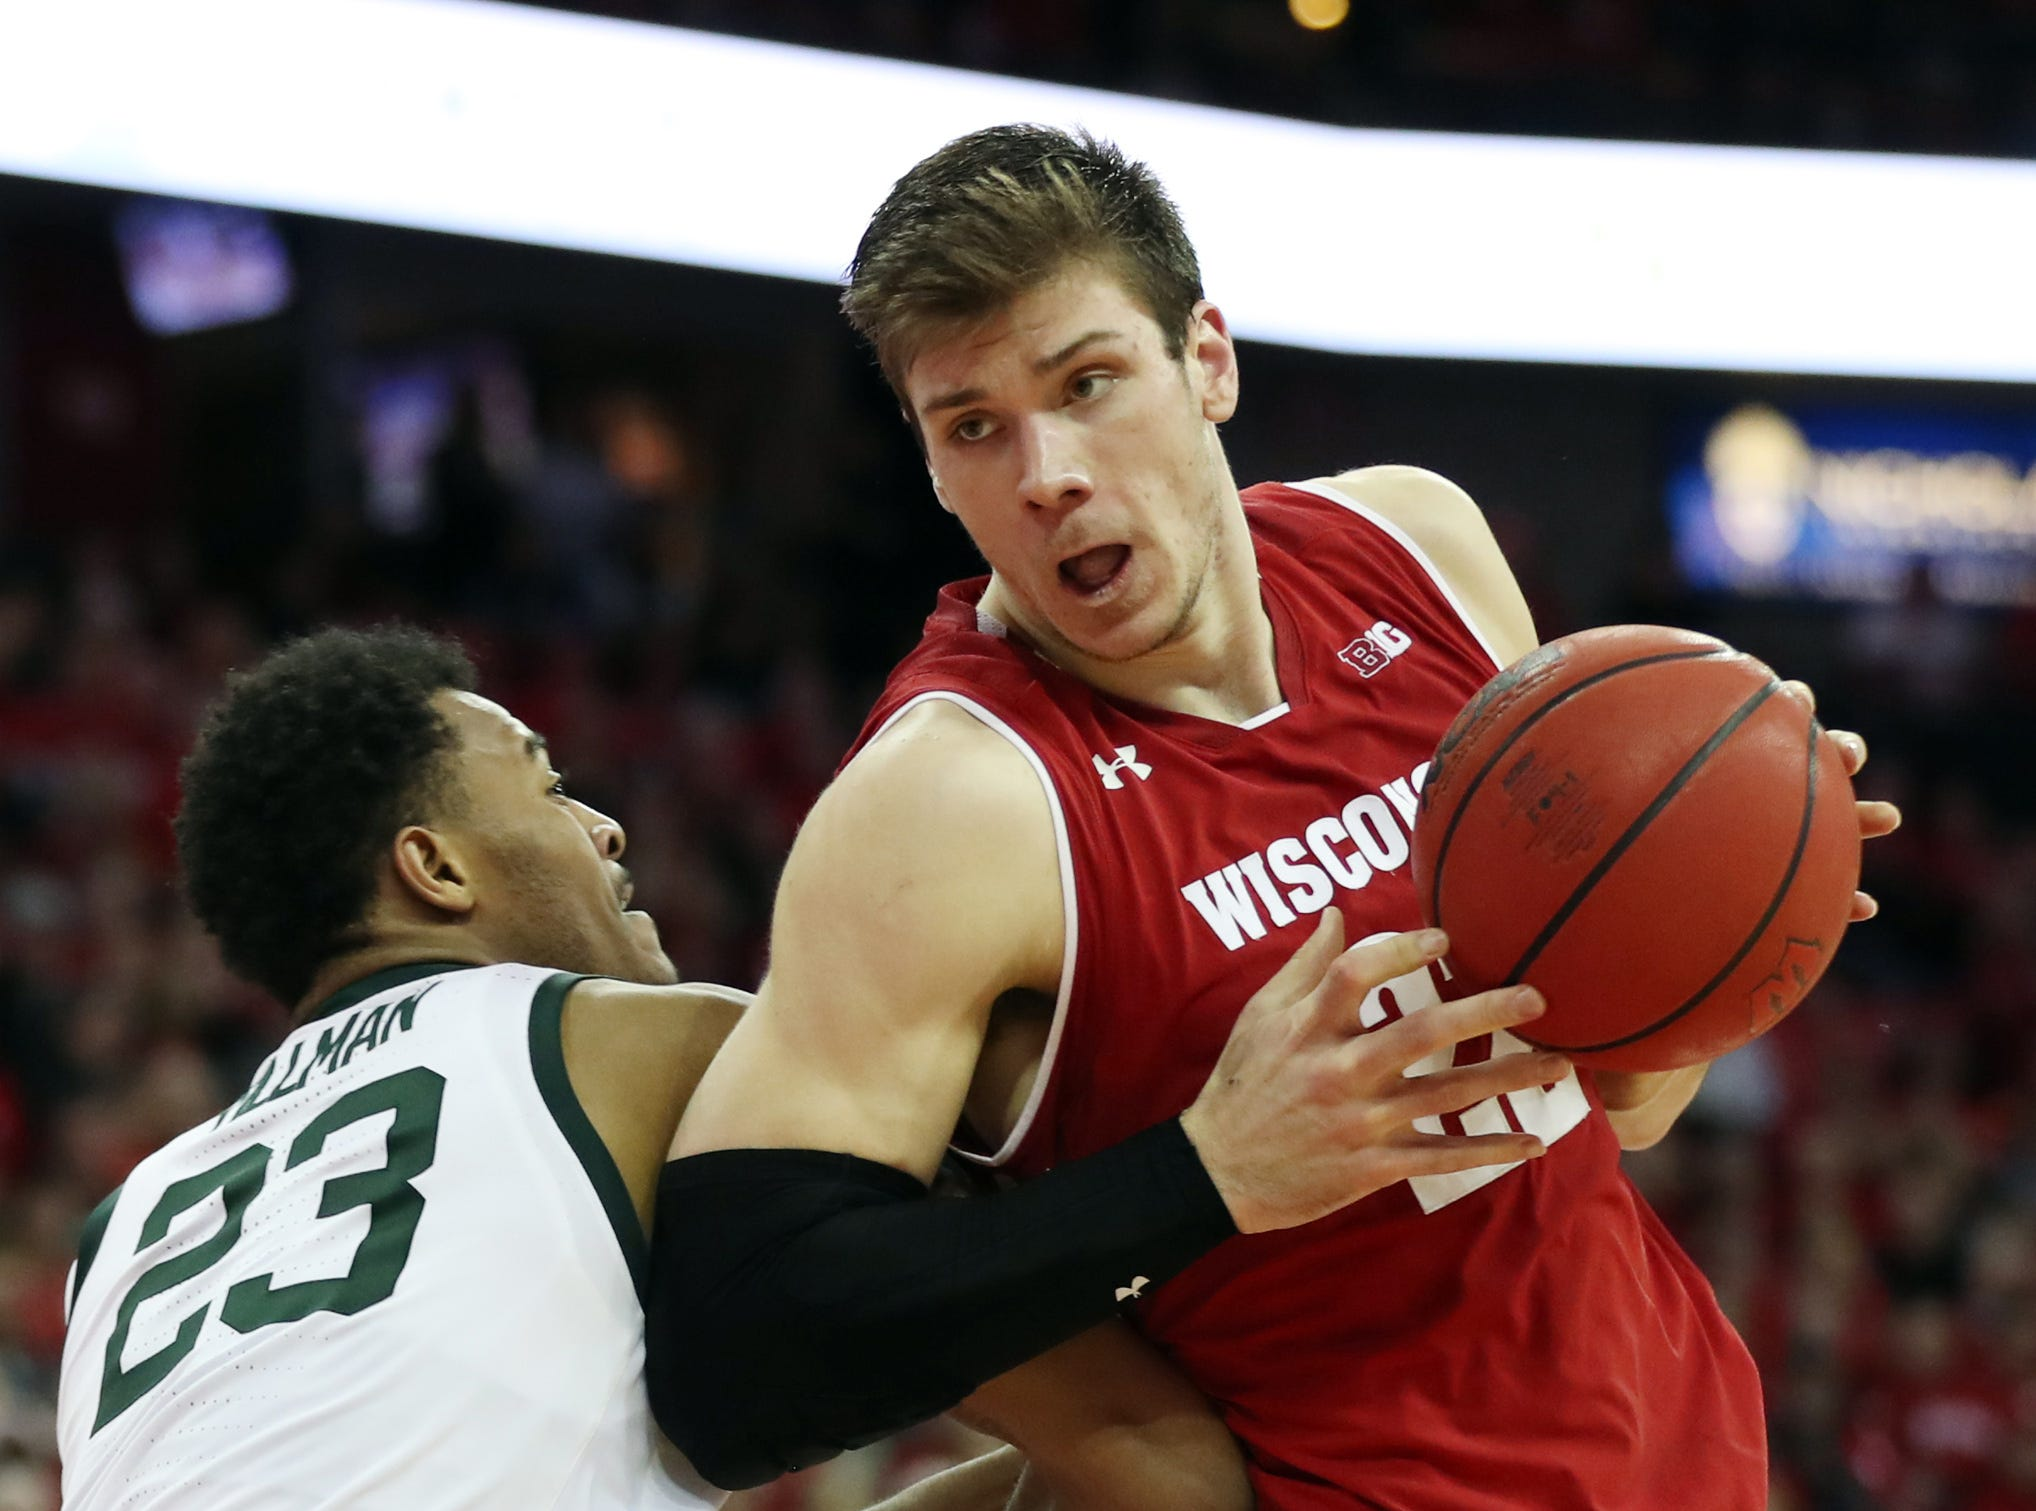 Wisconsin Badgers forward Ethan Happ (22) controls the ball as Michigan State Spartans forward Xavier Tillman (23) defends during the second half at the Kohl Center.